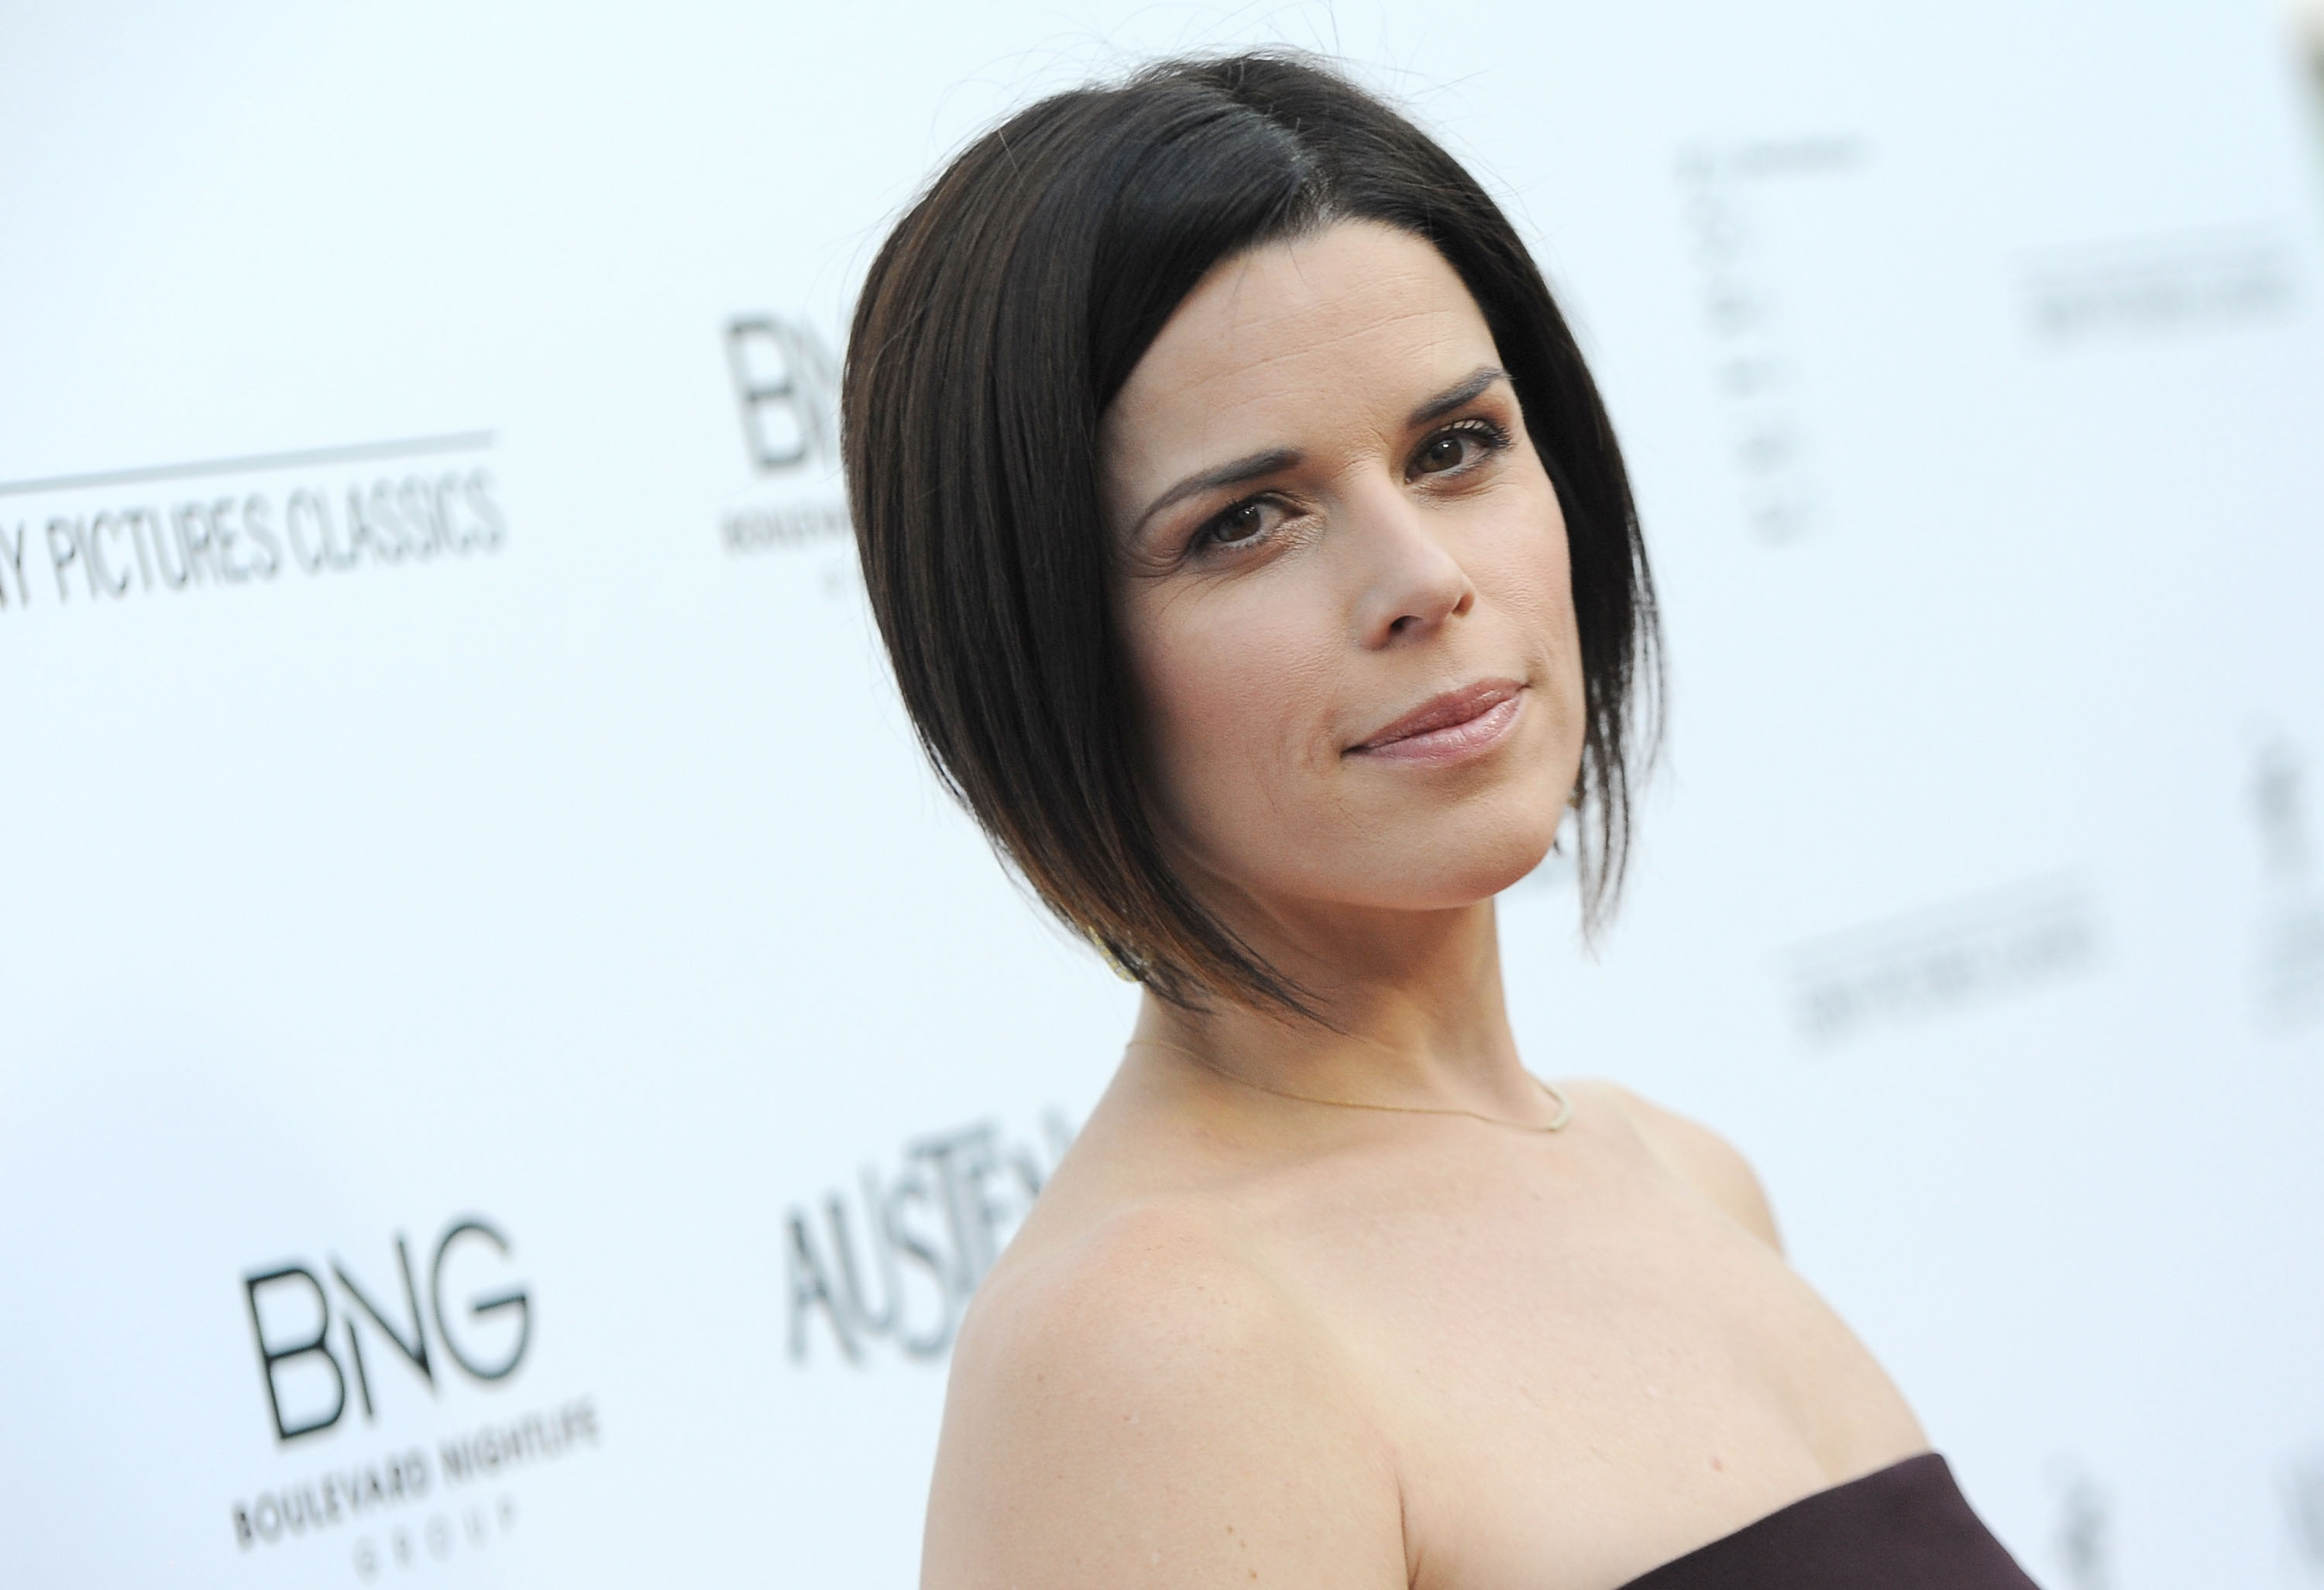 Communication on this topic: Alexandrine Latendresse, neve-campbell/